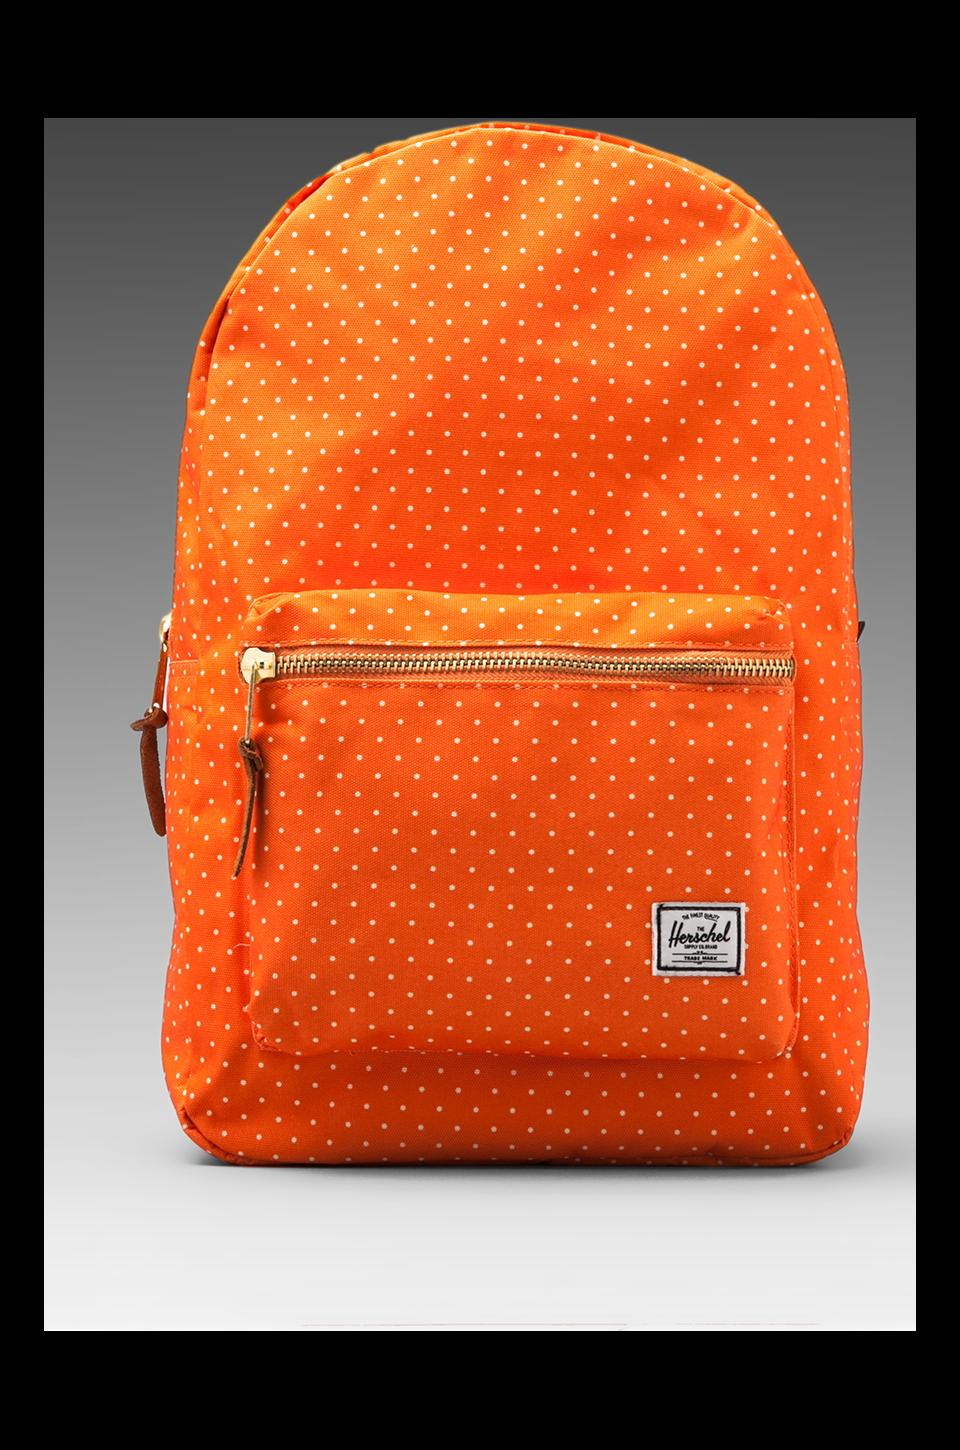 Herschel Supply Co. Sac à dos Settlement en Orange à Pois